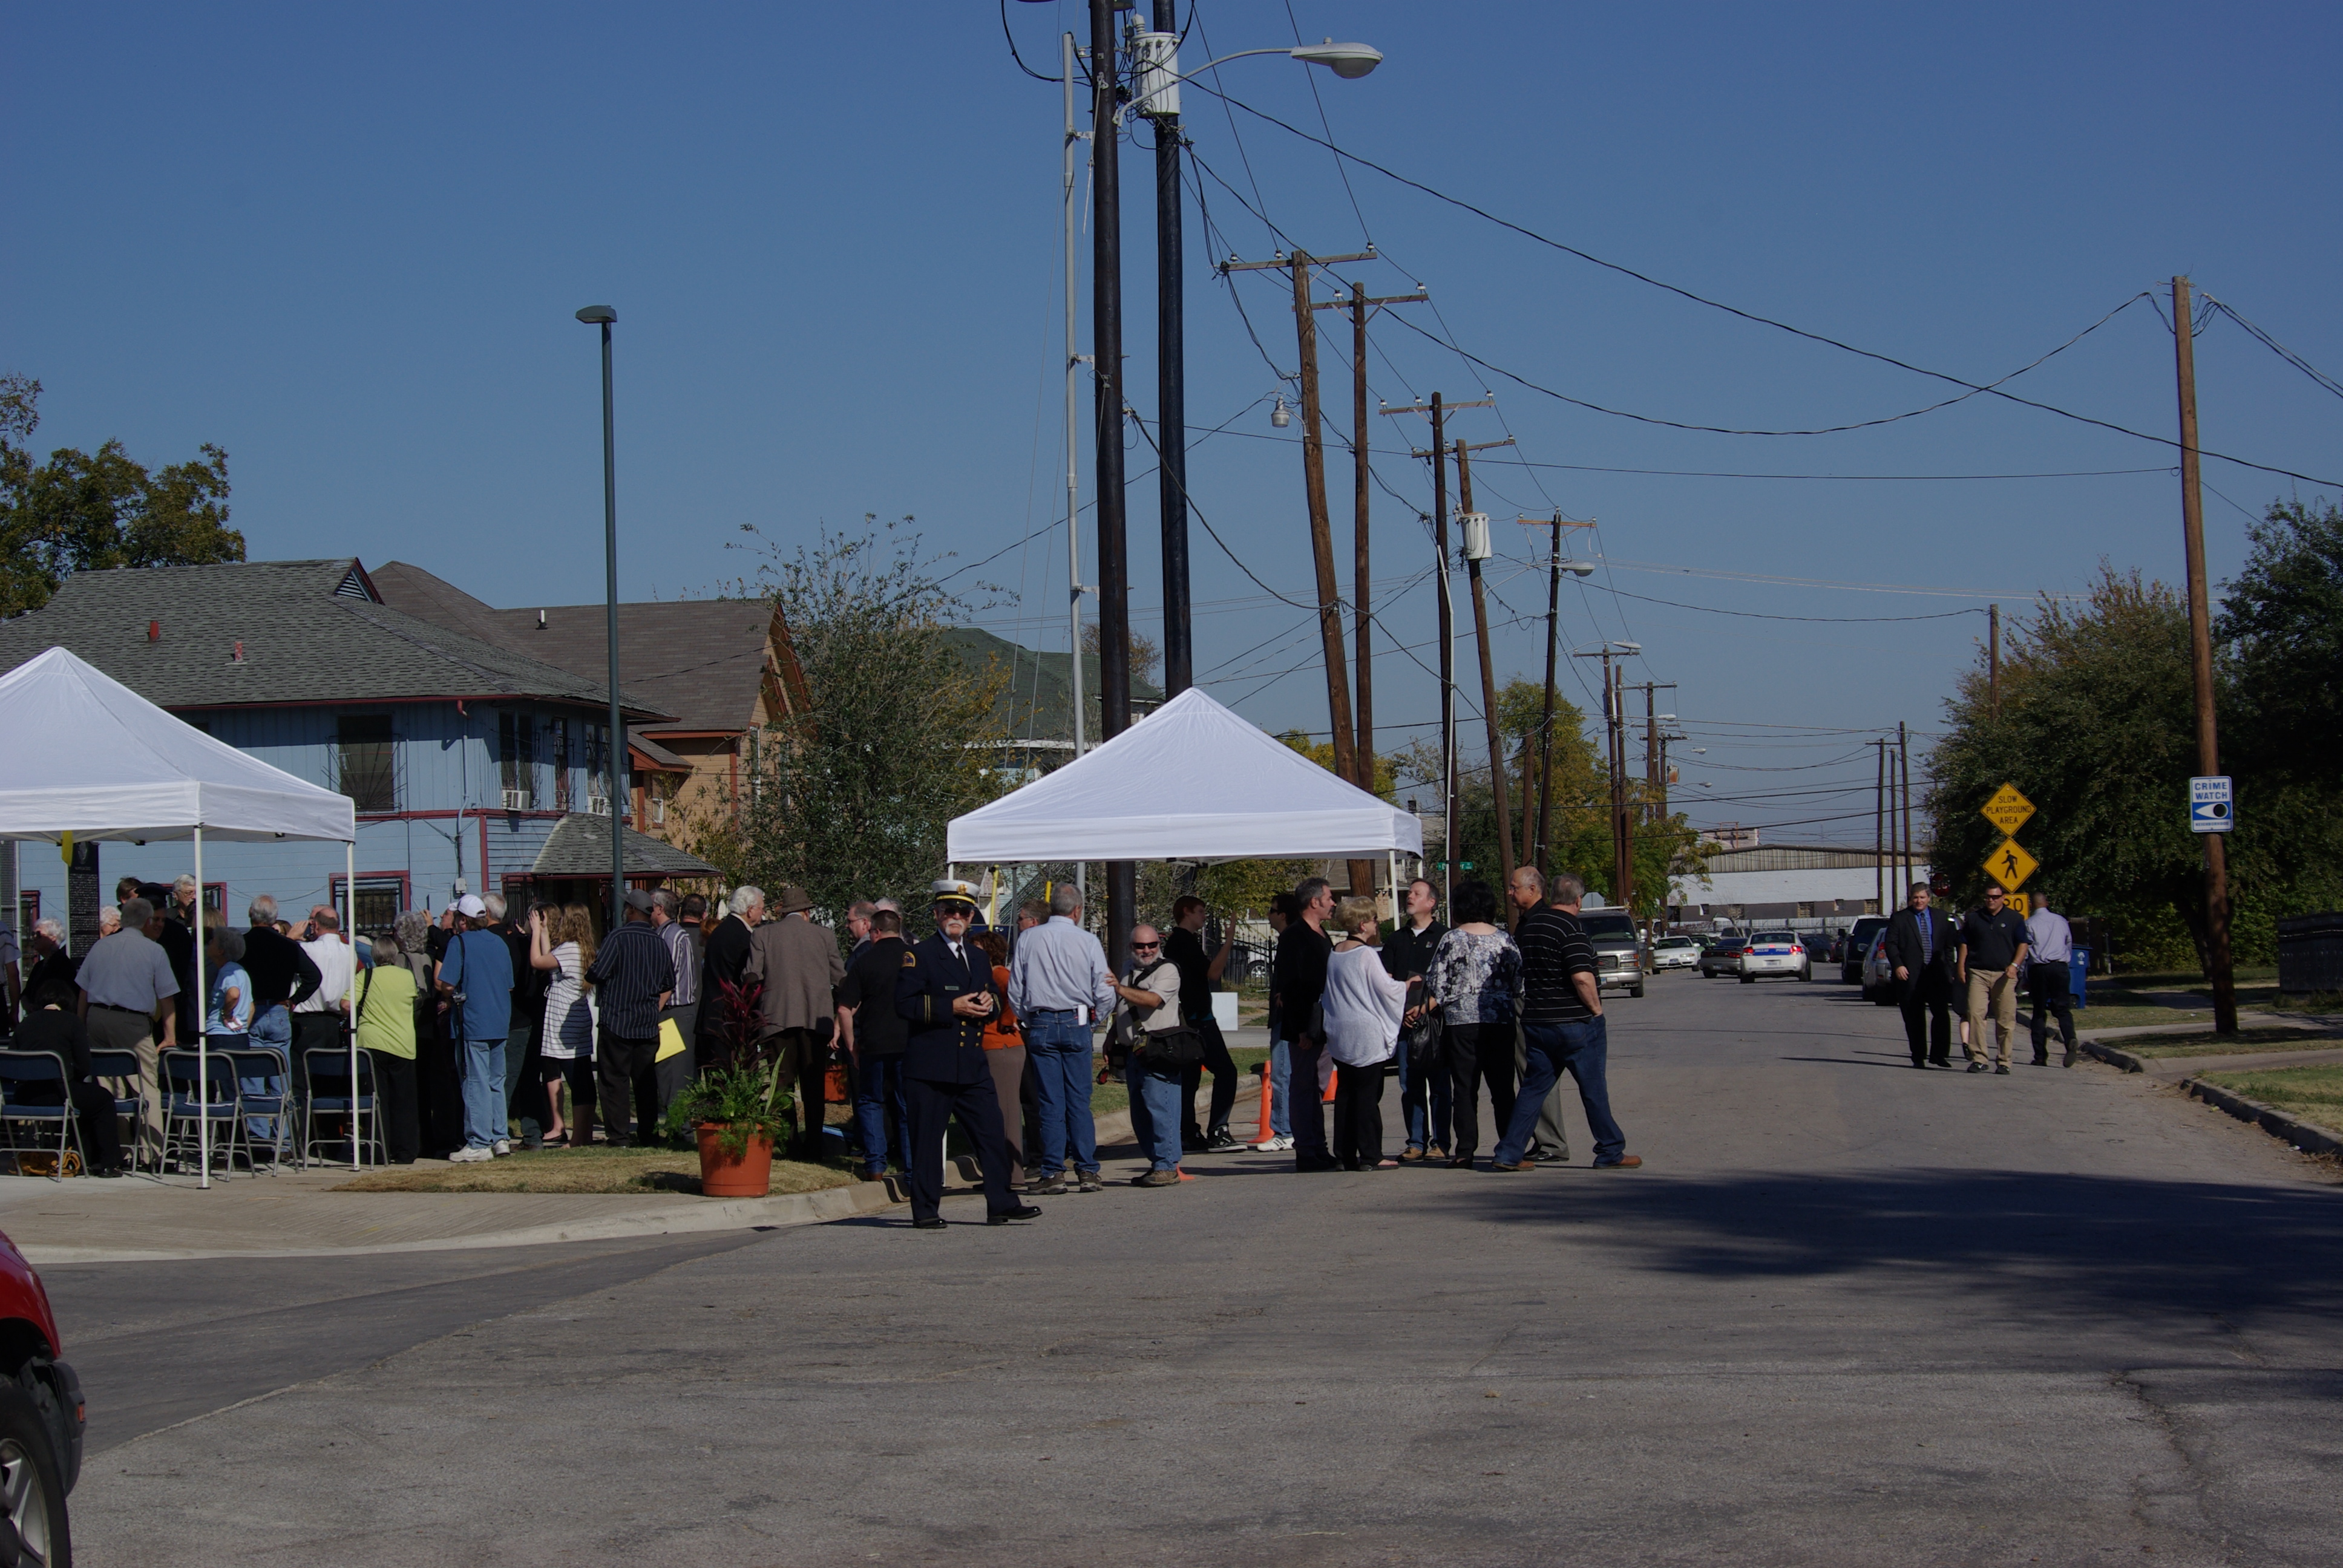 2012-11-20 Tippitt Memorial 039 10th St at Patton, Oak Cliff, Texas, at Tippit ceremony 11-20-2012 - photo by Ed Darrell